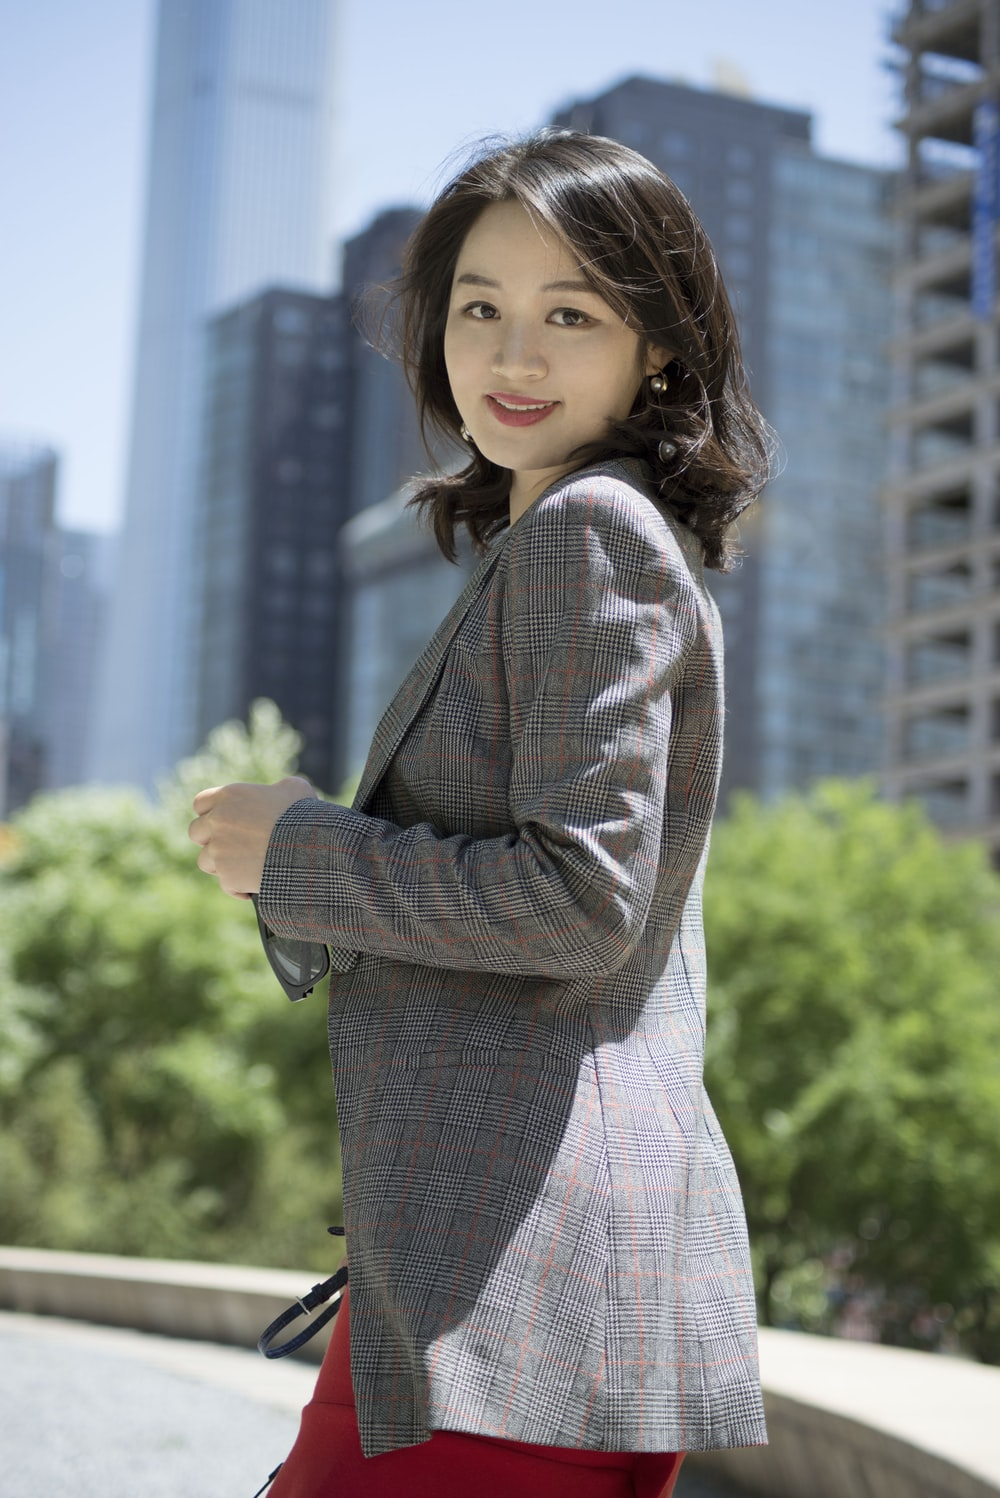 smiling woman wearing red, black, and gray plaid blazer